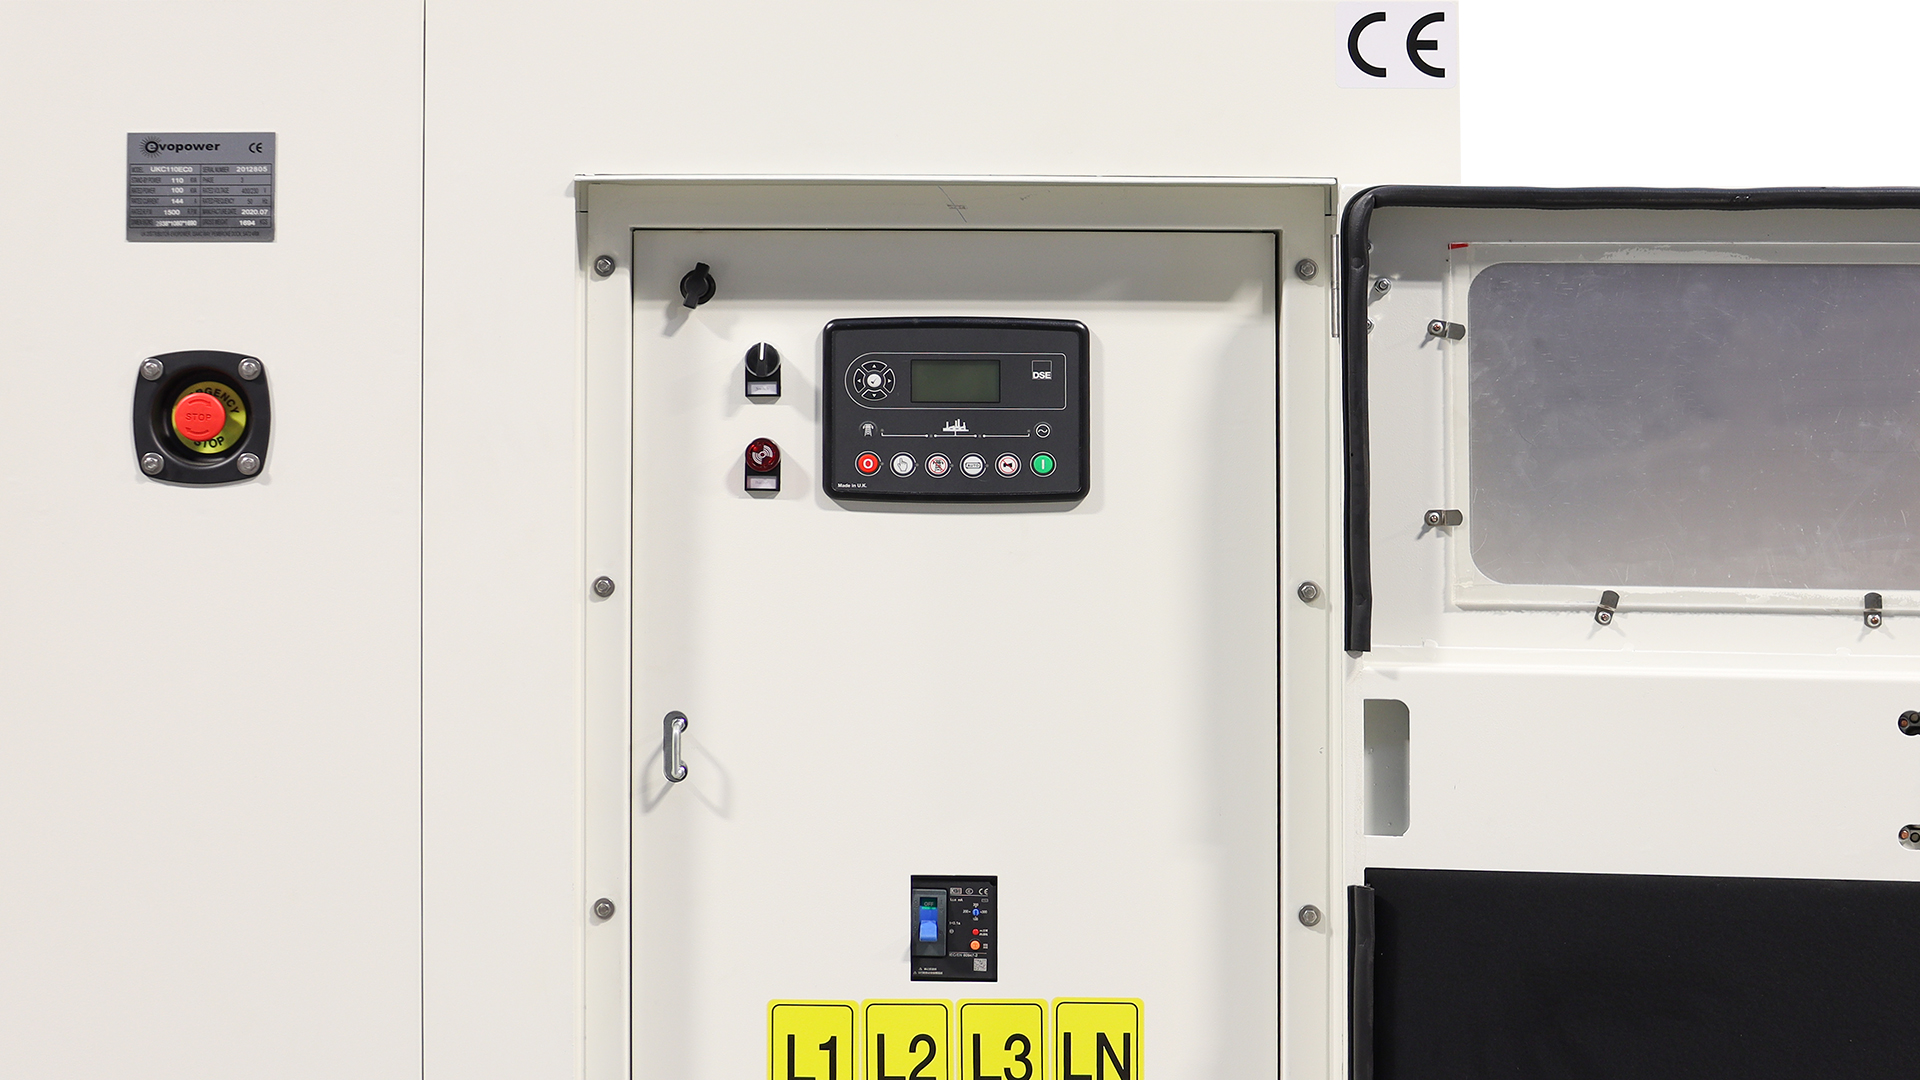 View of the Diesel Gen Including the DSE6120 Control Panel and Breaker